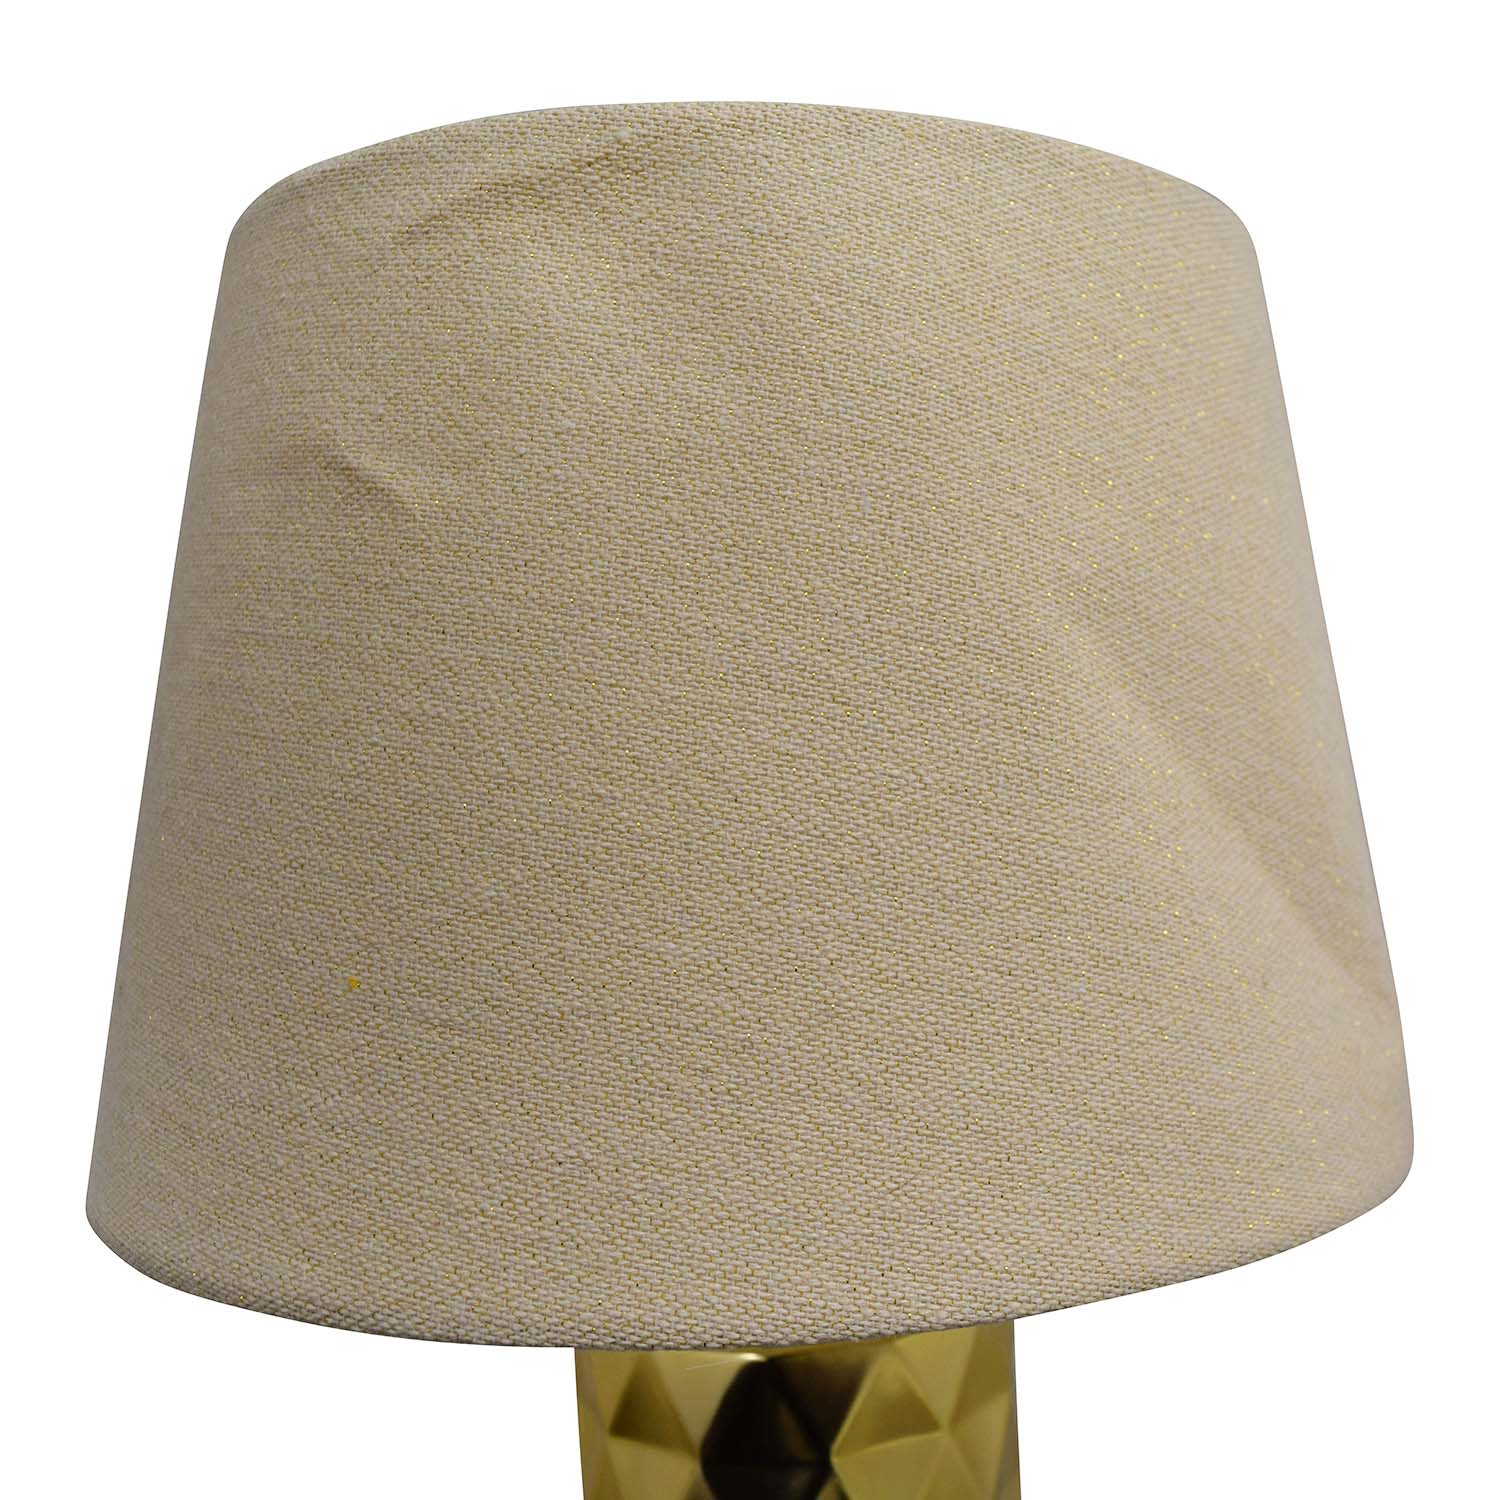 Table Lamps Target 36 Off Target Target Gold Table Lamp Decor